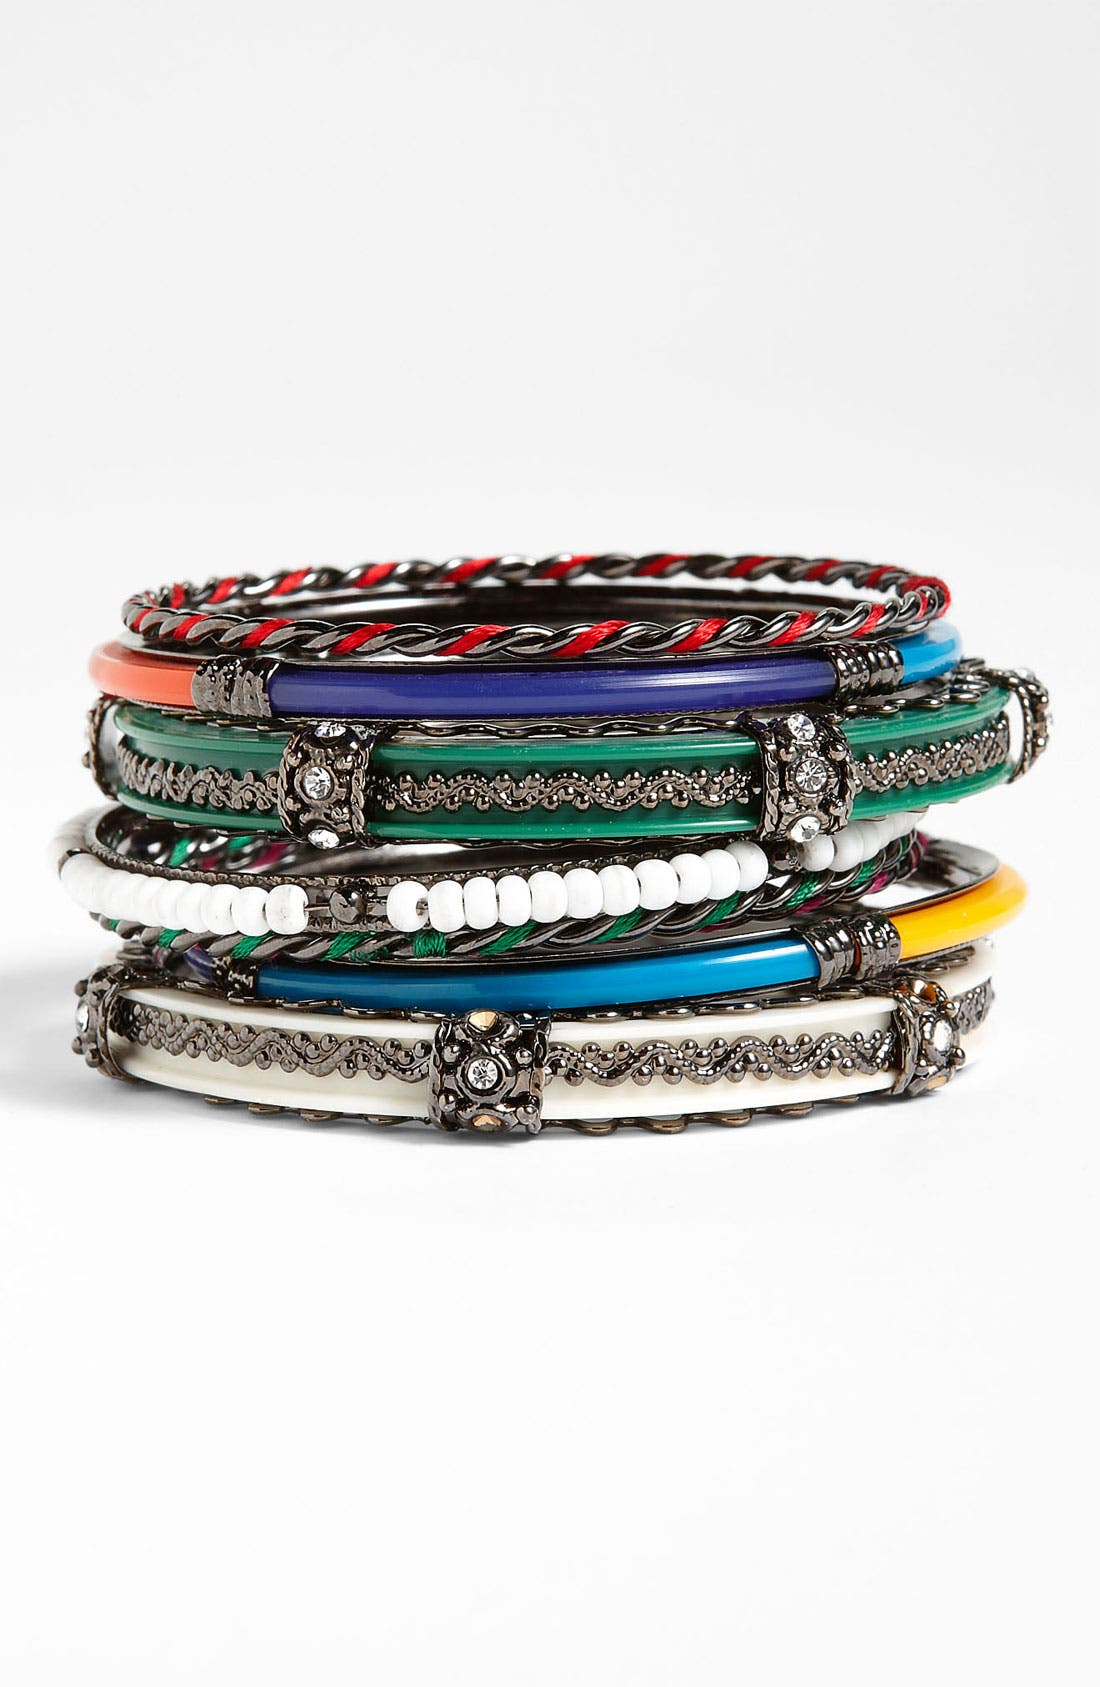 Alternate Image 1 Selected - Spring Street Bangles (Set of 8)